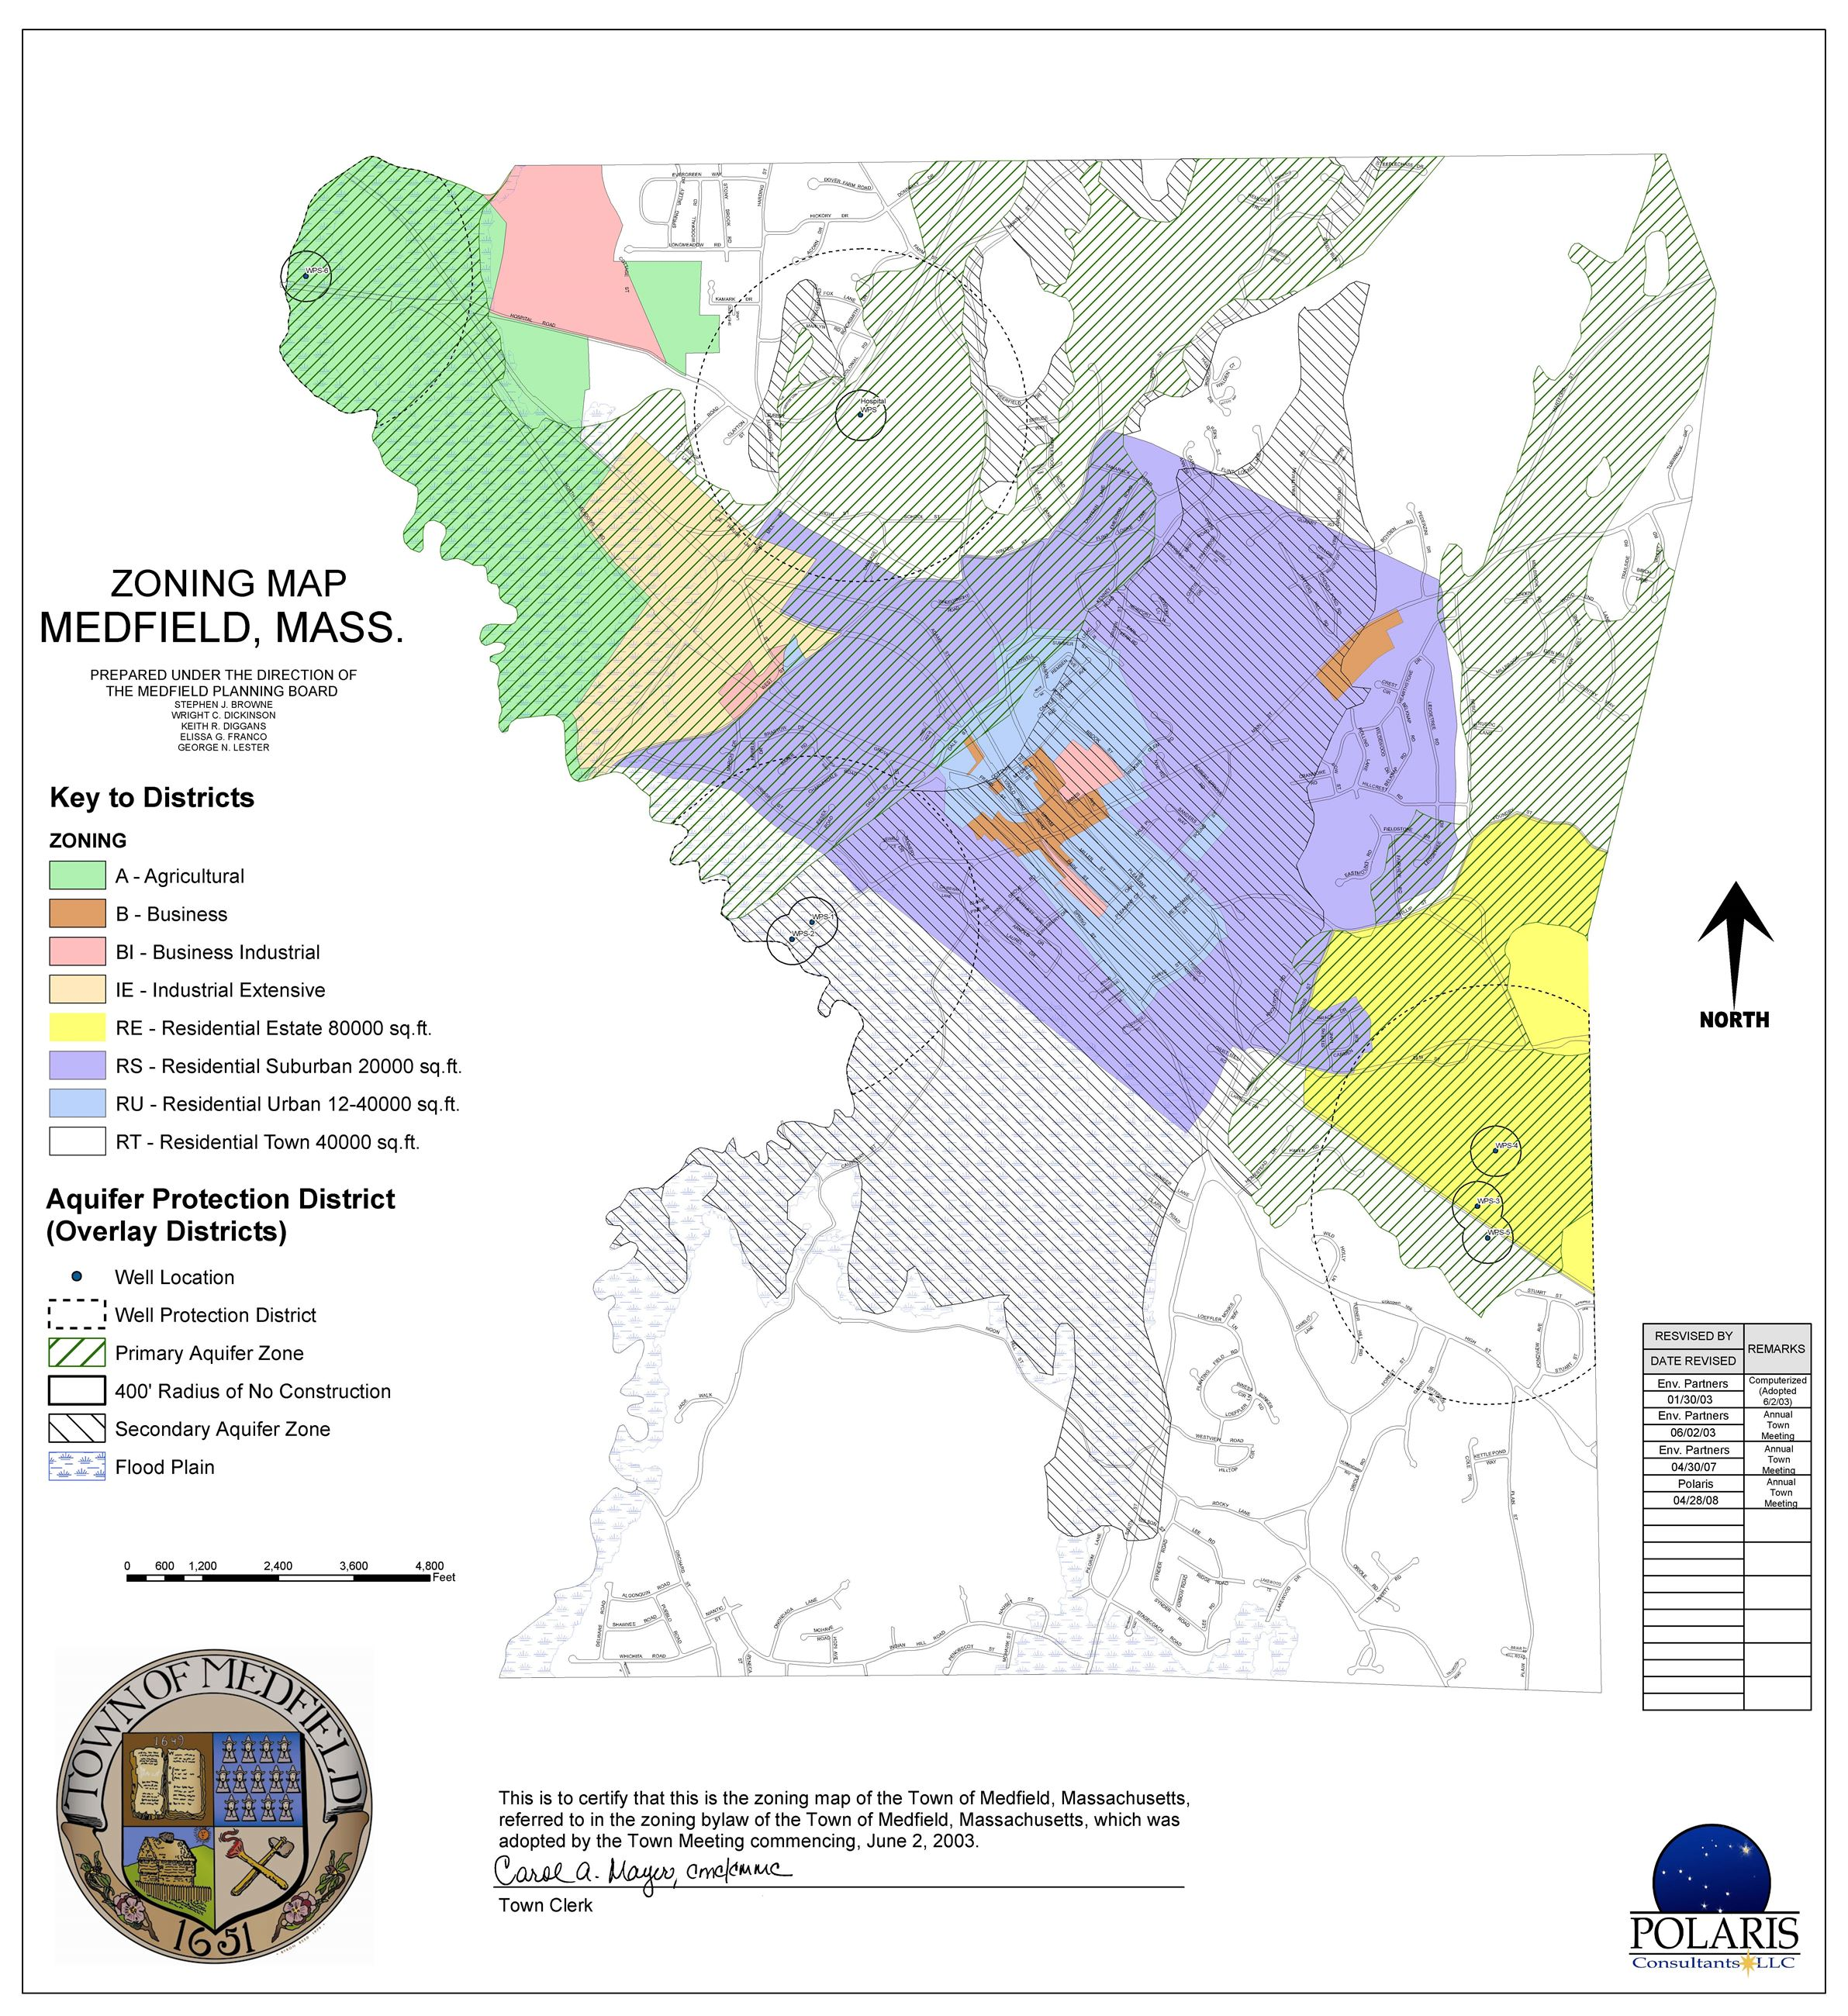 Zoning Map   Medfield, MA on land use map, zoning board of appeals, survey map, residential map, zoning regulations, future land use map, planning commission, streets map, city council, floodplain map, mashpee ma town map, zoning ordinance, e zone map, climate zone map, business map, wetlands map, parking map, open space map, transportation map, soils map, india earthquake zone map, zoning code,